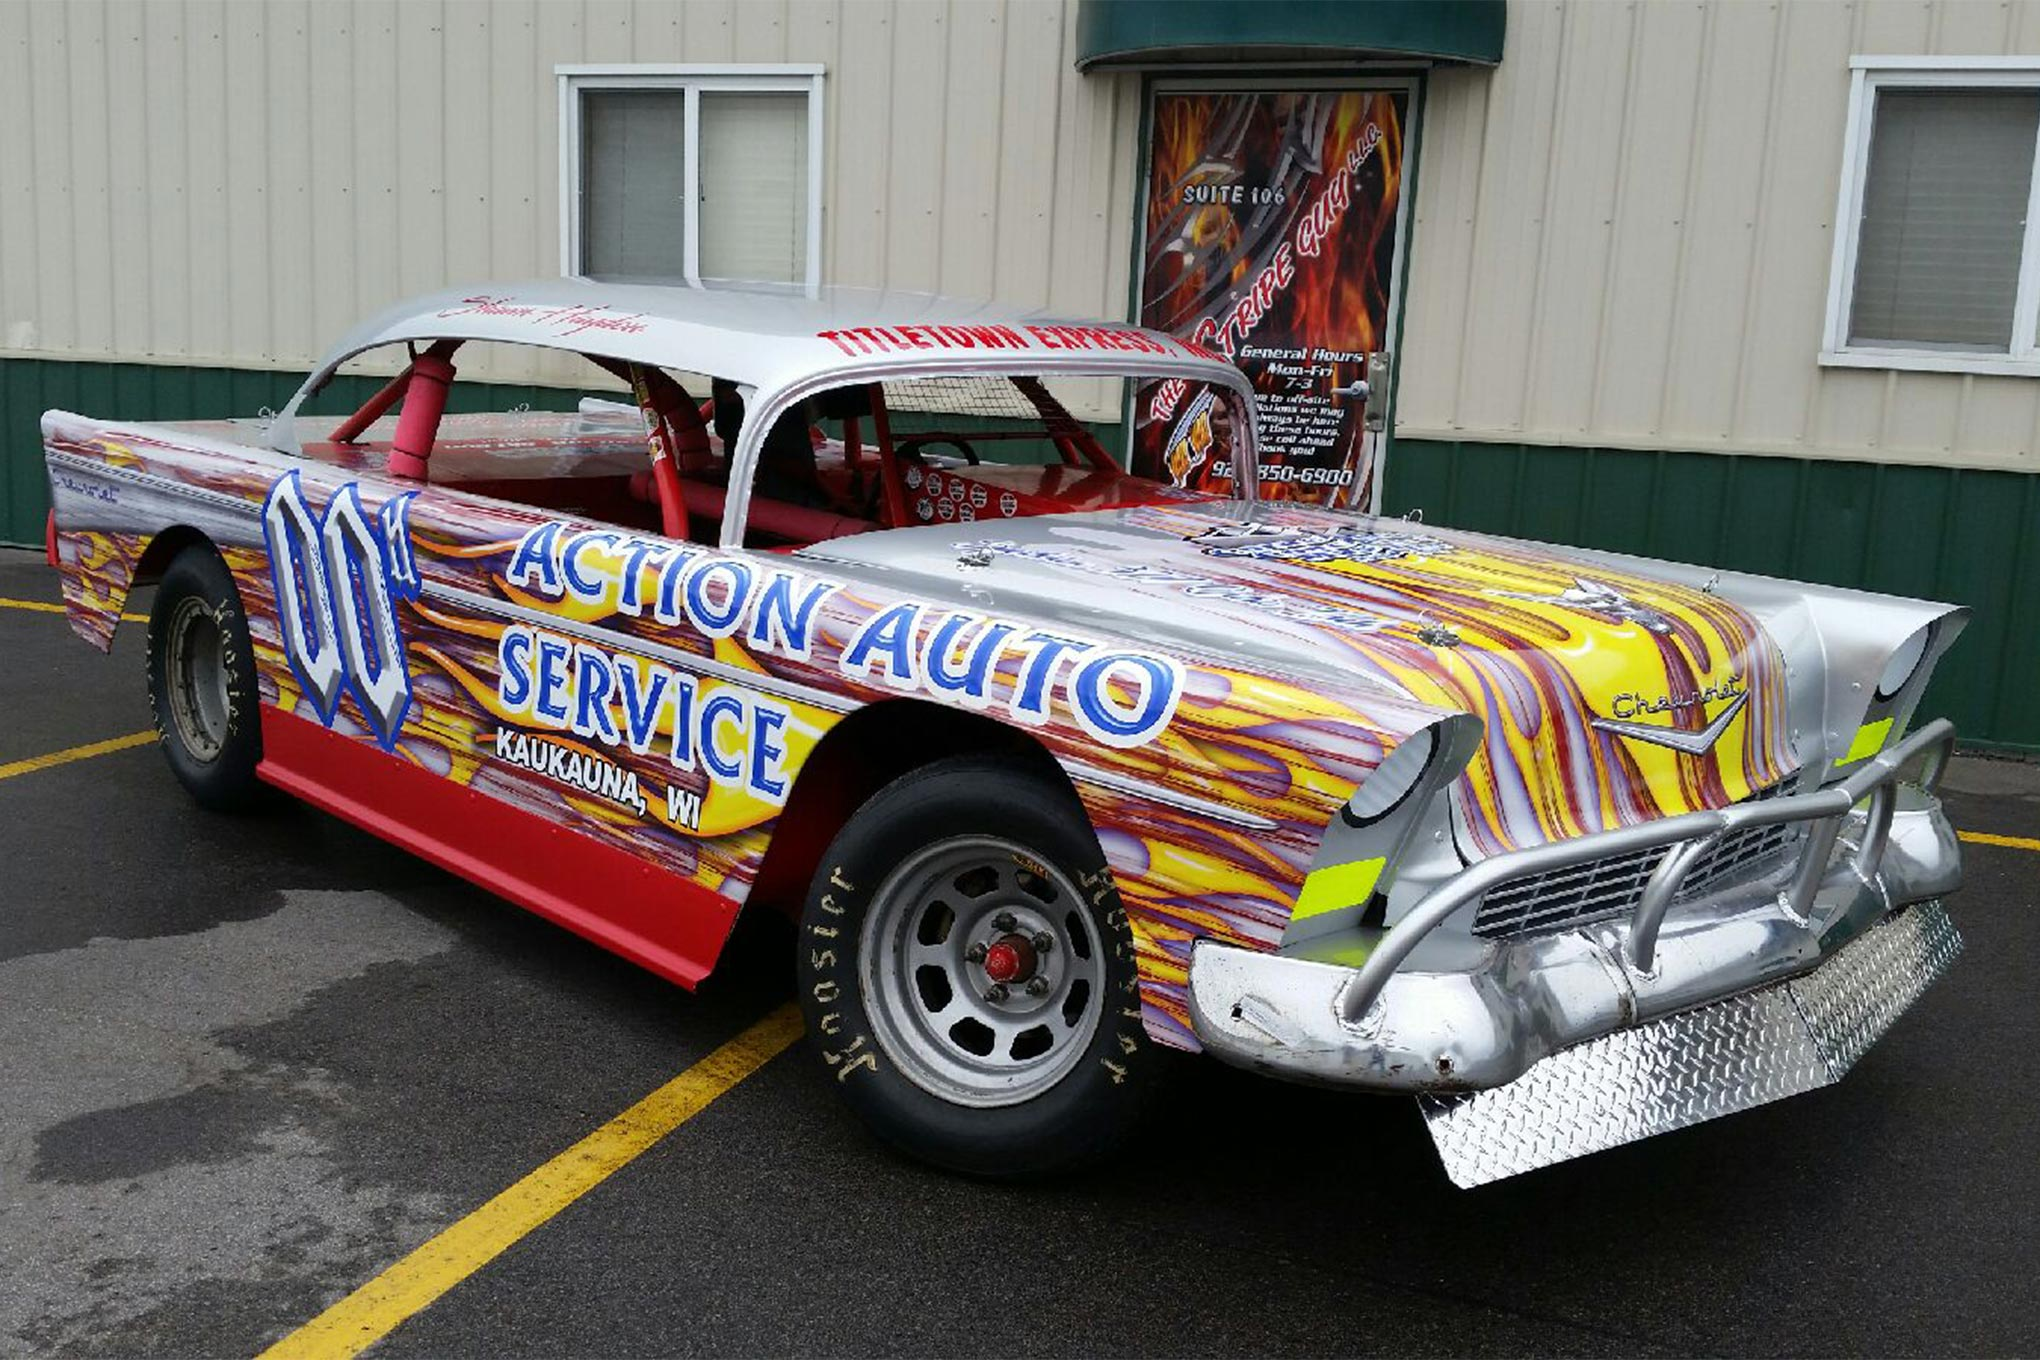 The '56 Chevy Four-Door Bel Aire constructed by Ed Howard, Shawn Haydon and the team at Action Auto.